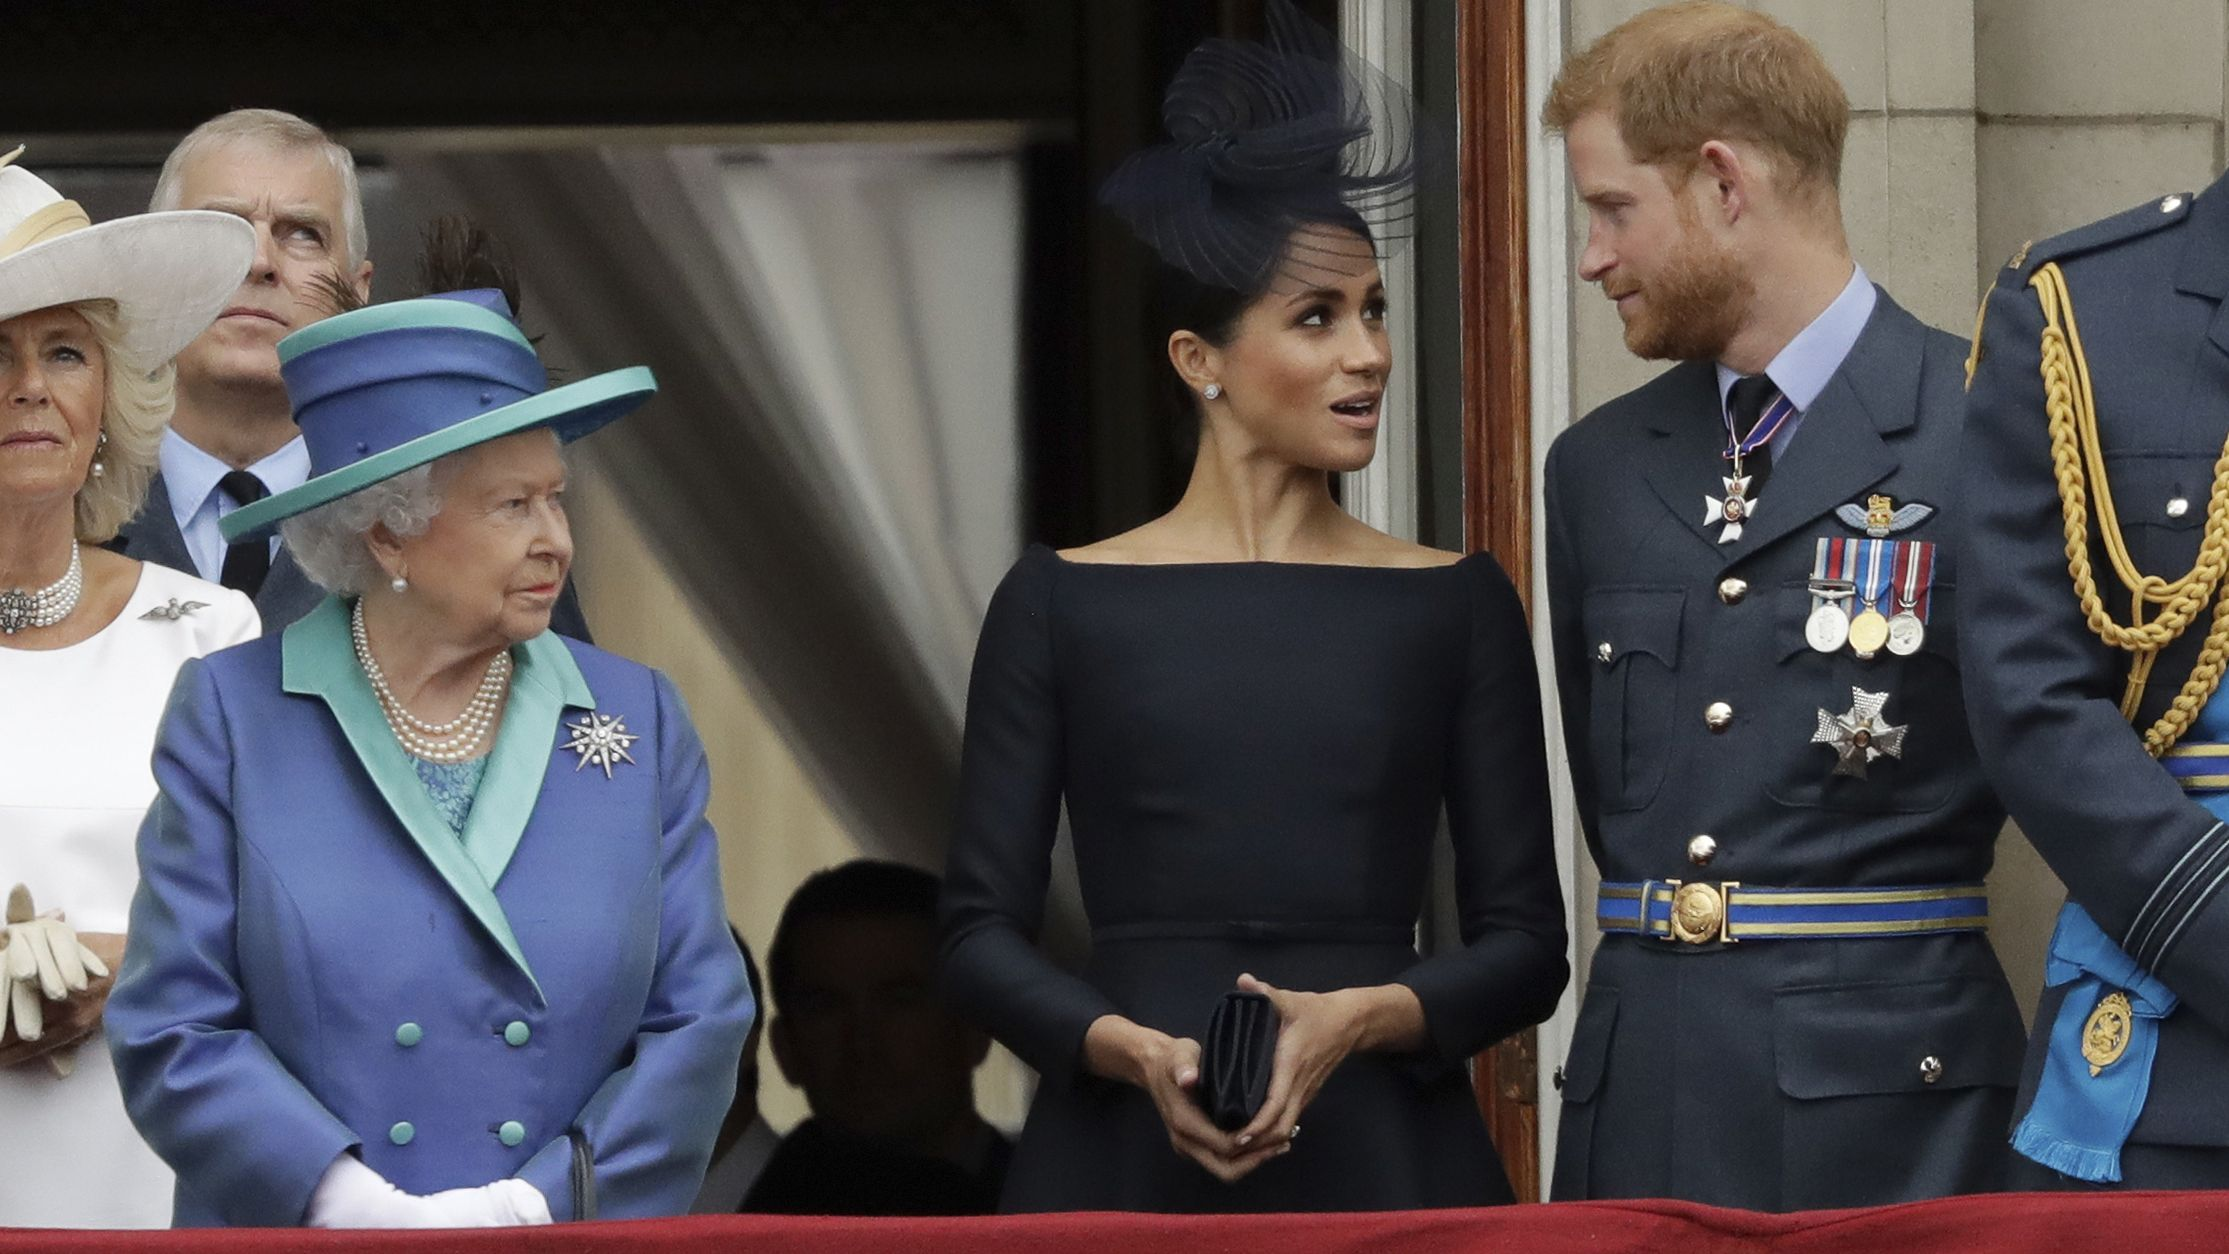 Queen Elizabeth II, Meghan the Duchess of Sussex und Prince Harry